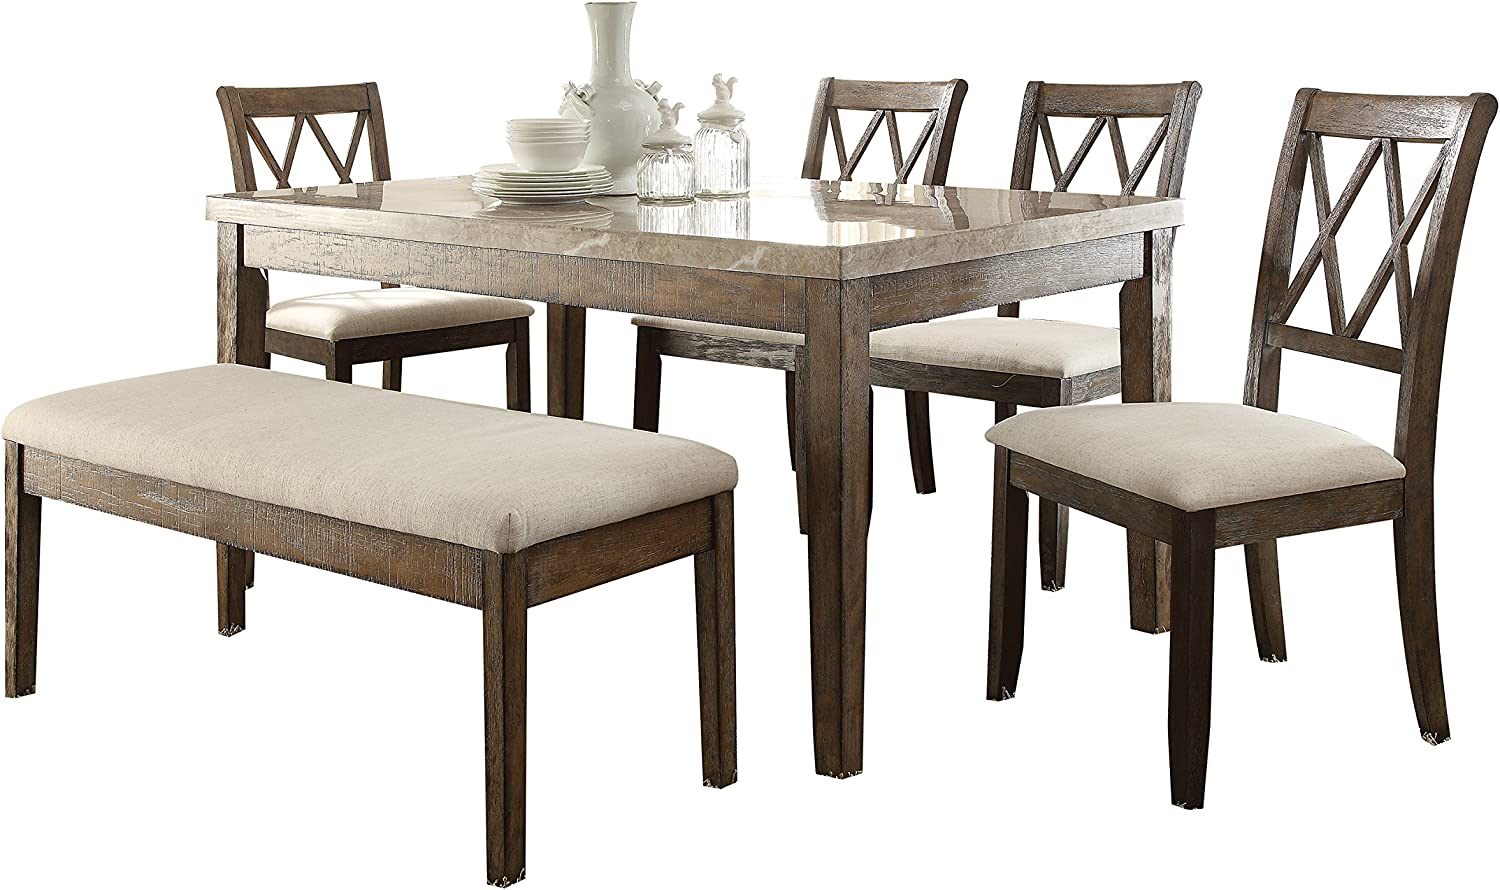 Acme Furniture 71715 Claudia Dining Table White Marble Salvage Brown Tables